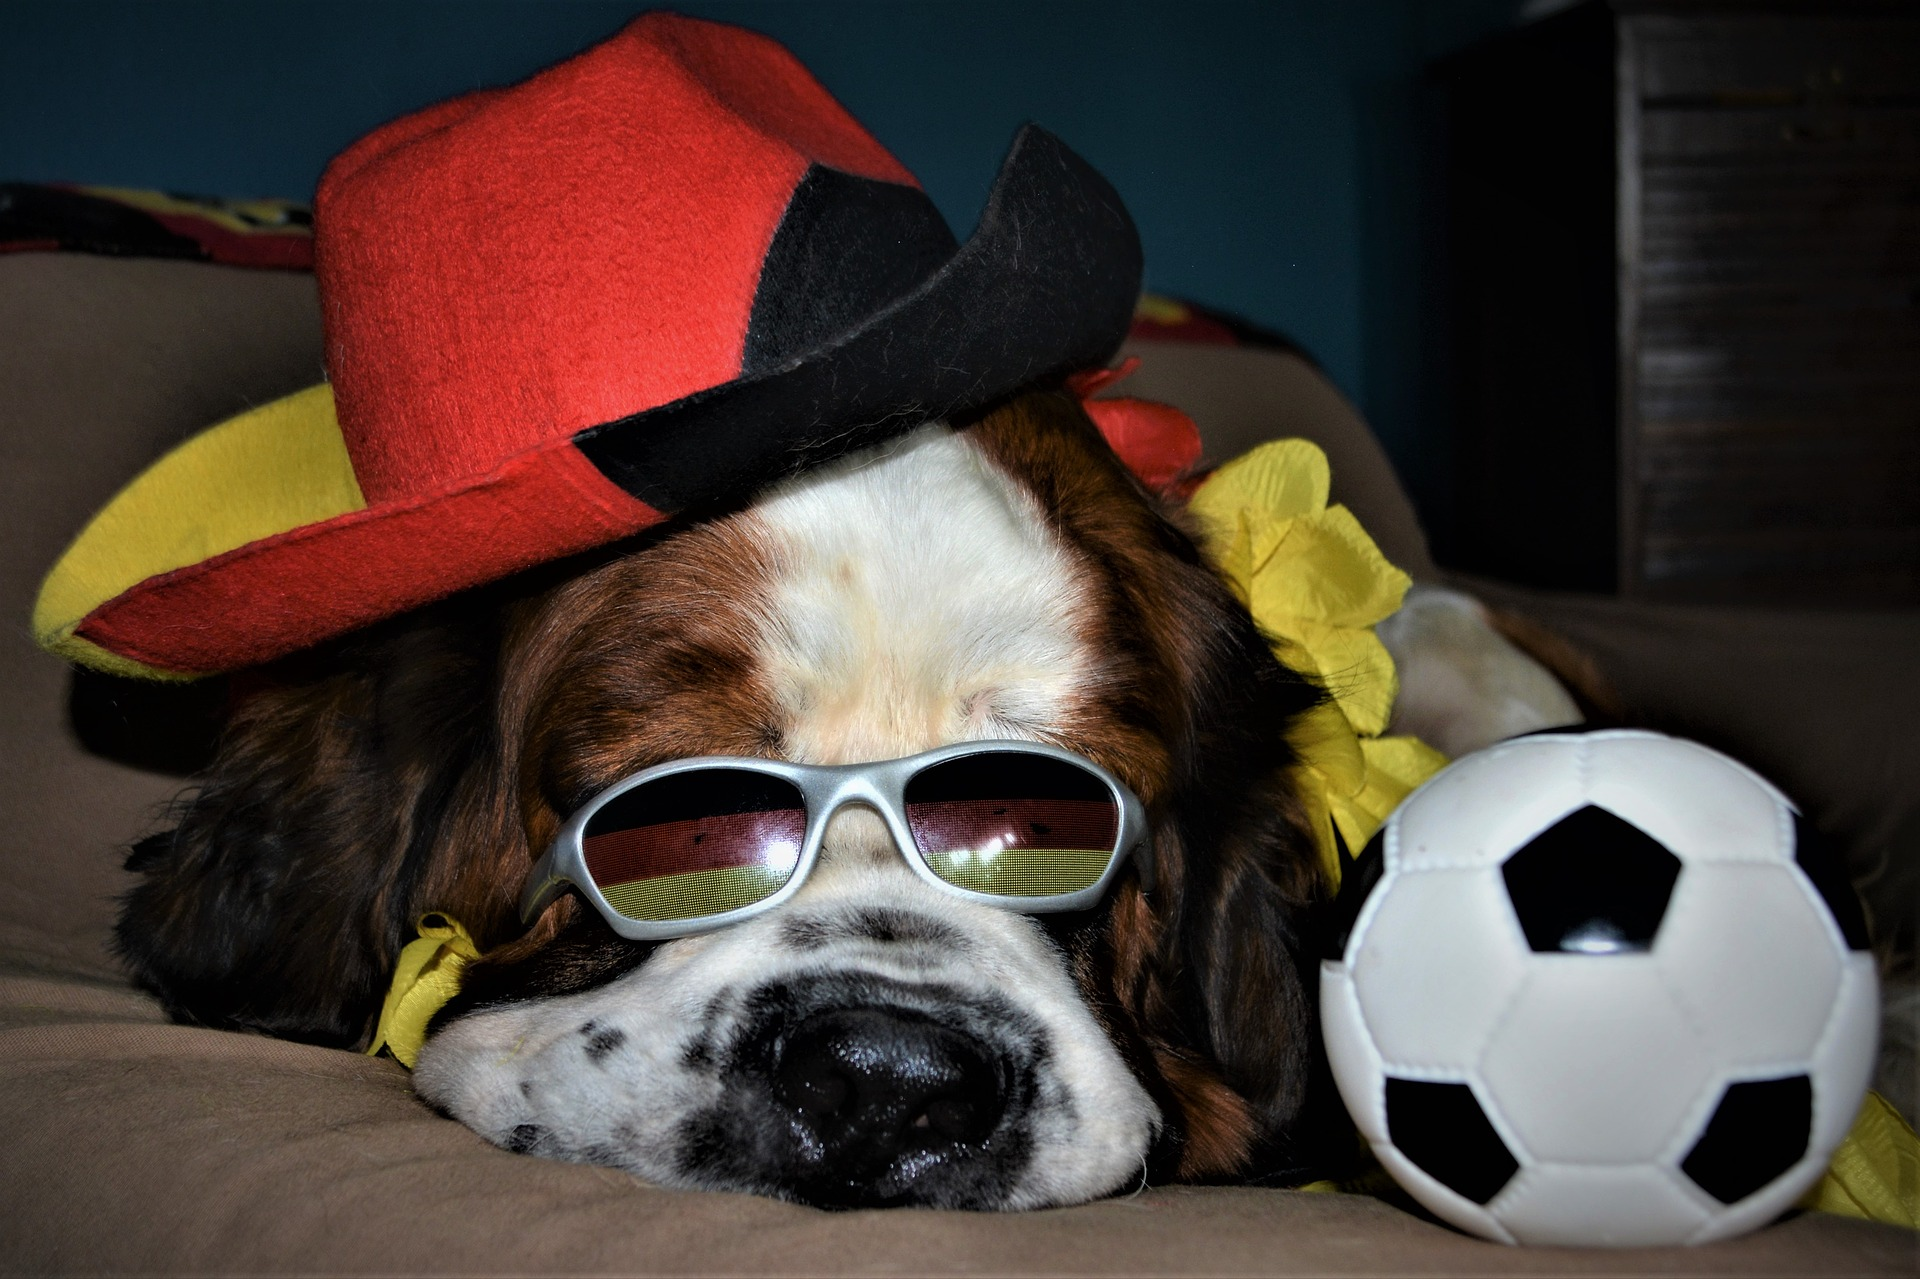 St. Bernard wearing red hat and shades